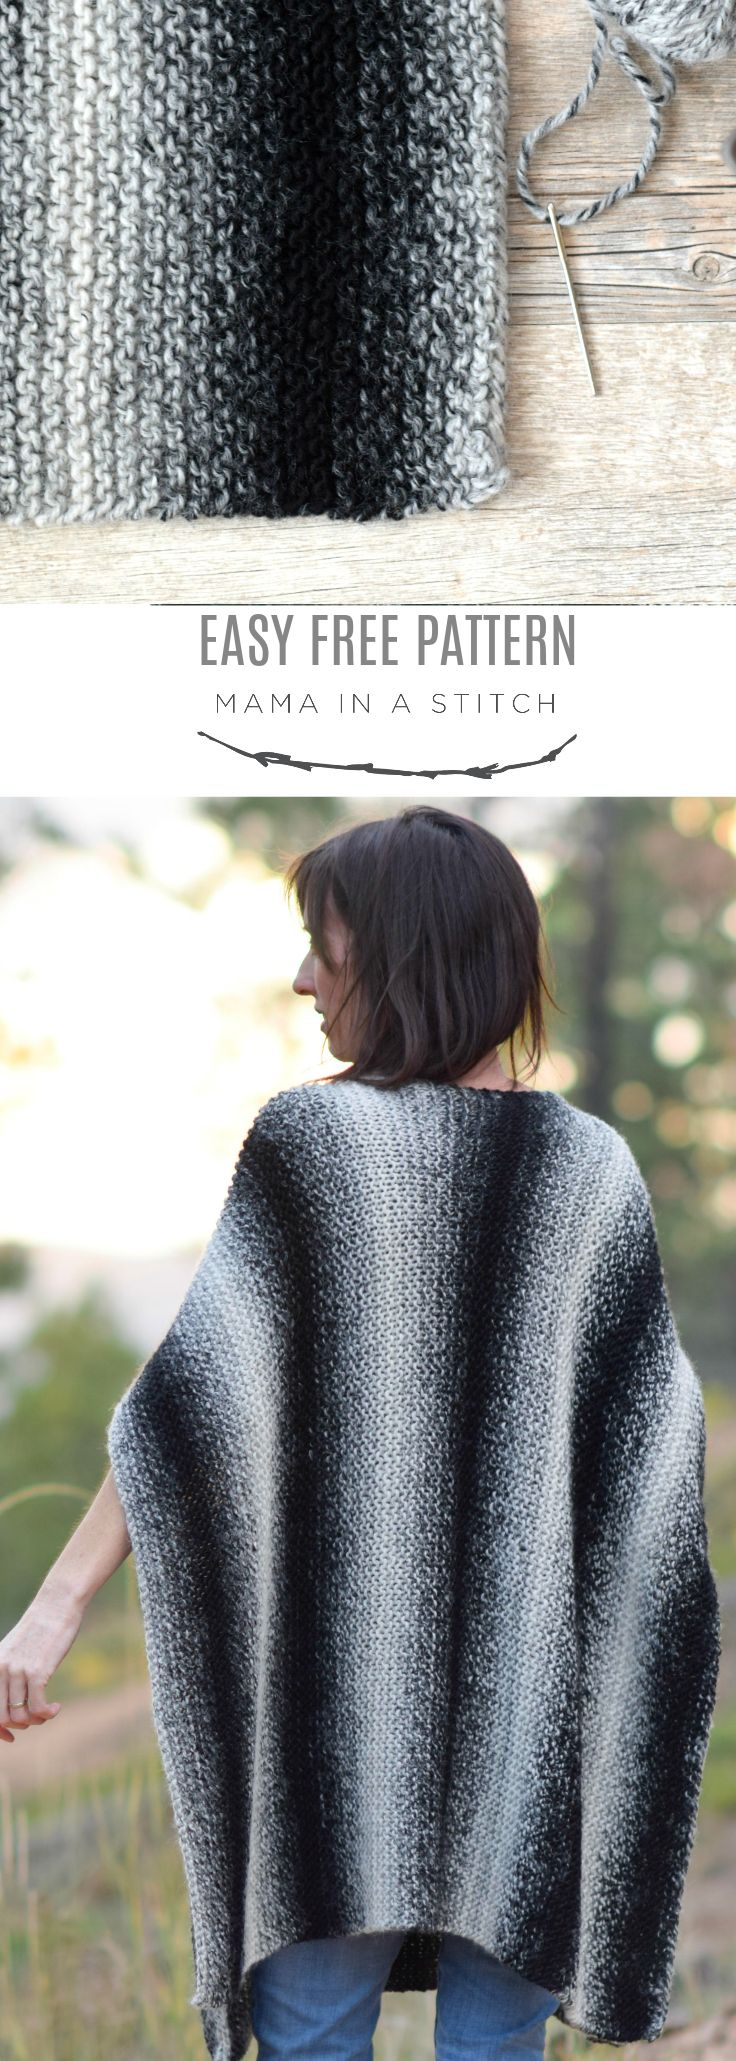 Aspen Relaxed Knit Poncho Pattern via @MamaInAStitch | Knitting ...